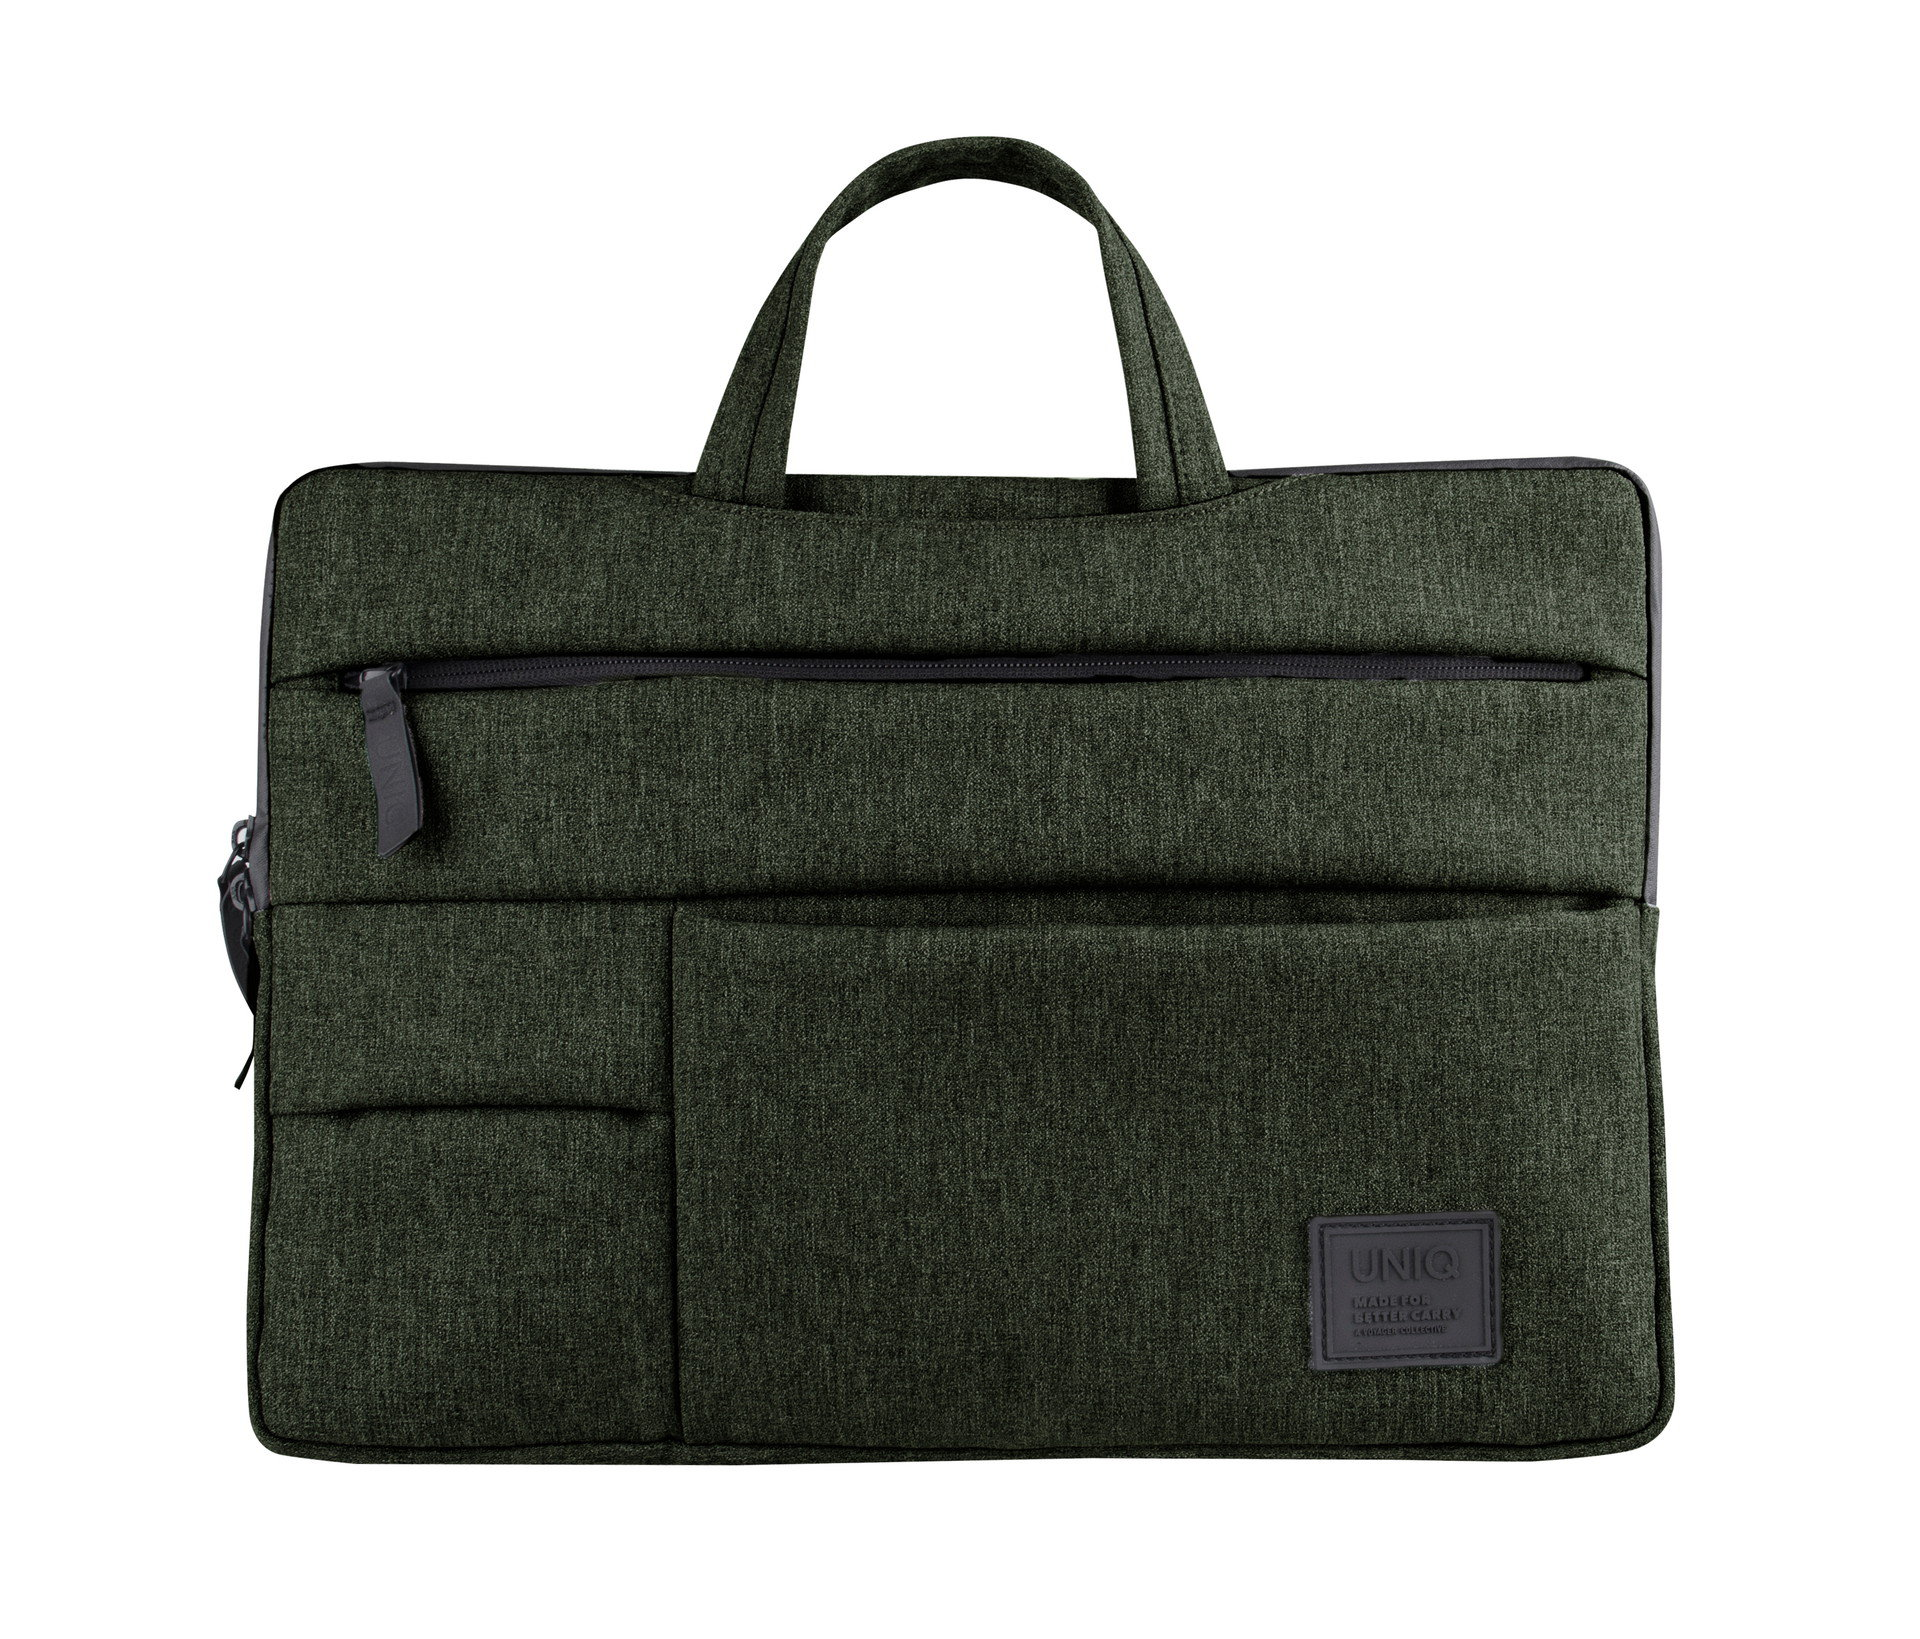 Uniq Cavalier 2-in-1 Laptop Sleeve (Up to 15 Inche) - Khaki Green